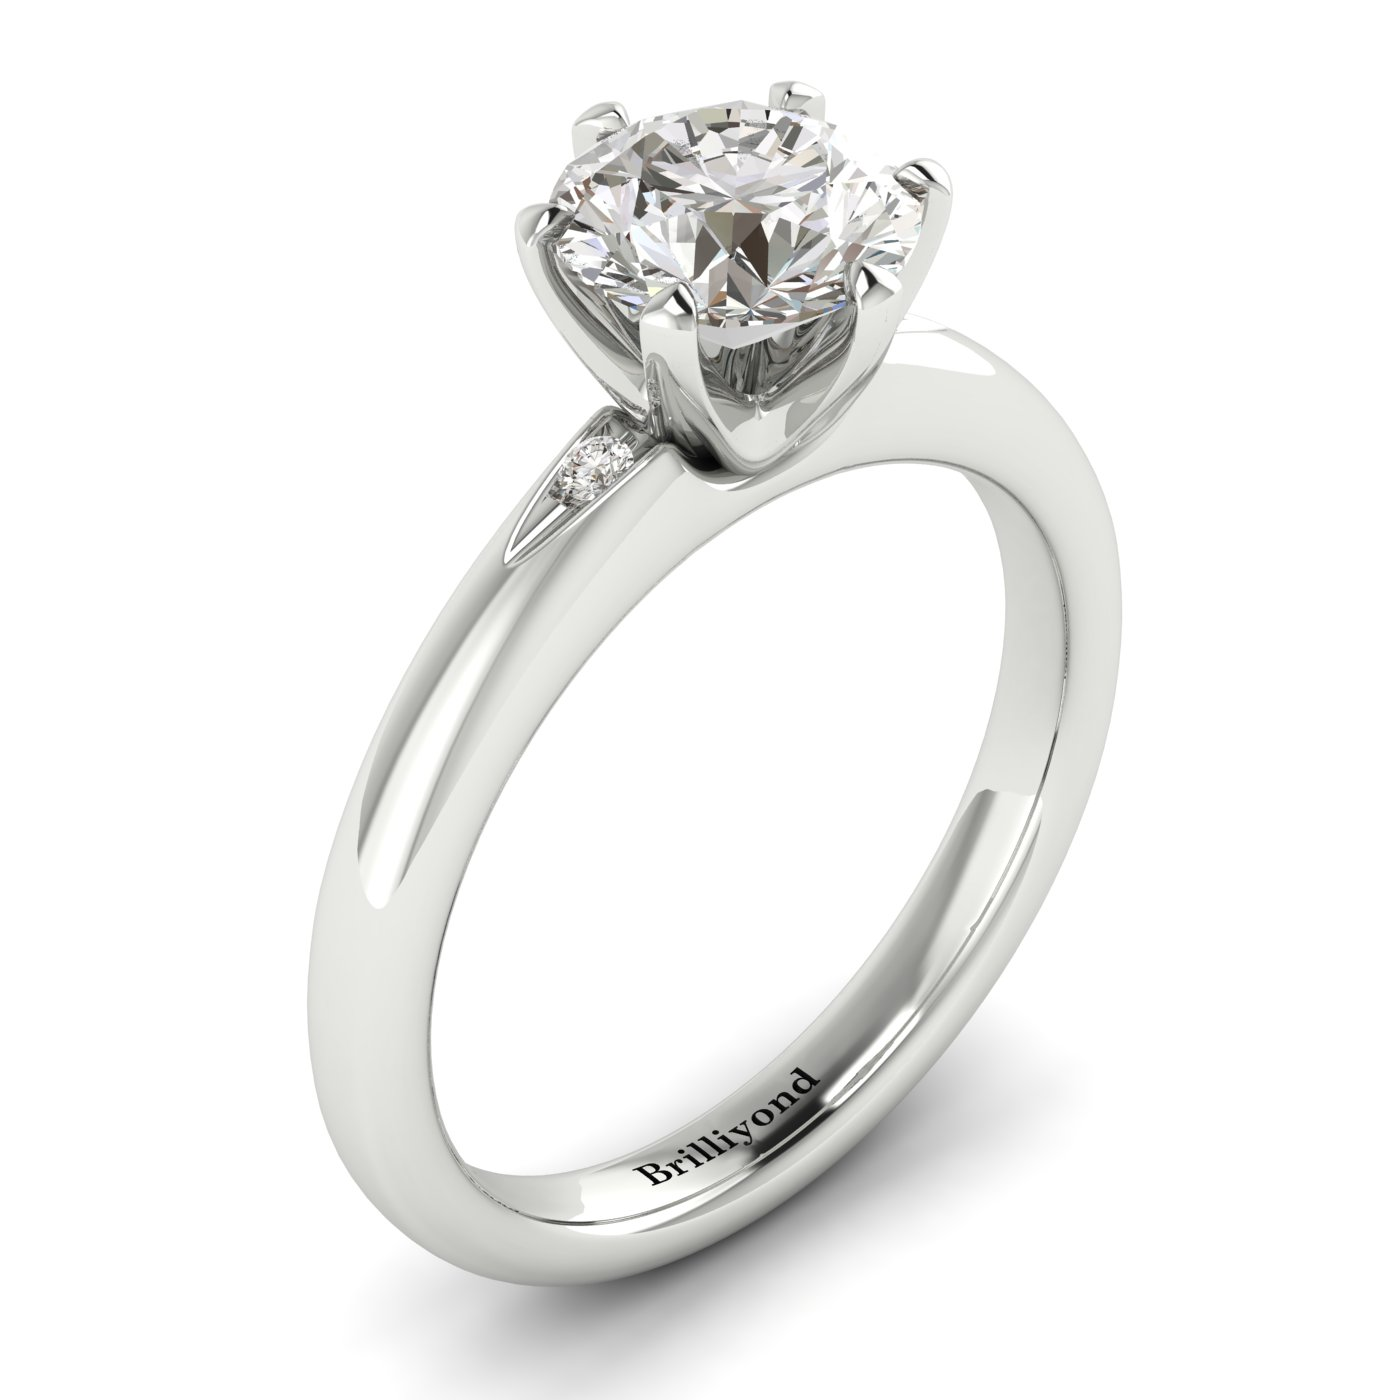 Diamond White Gold Solitaire Engagement Ring Byond_image1